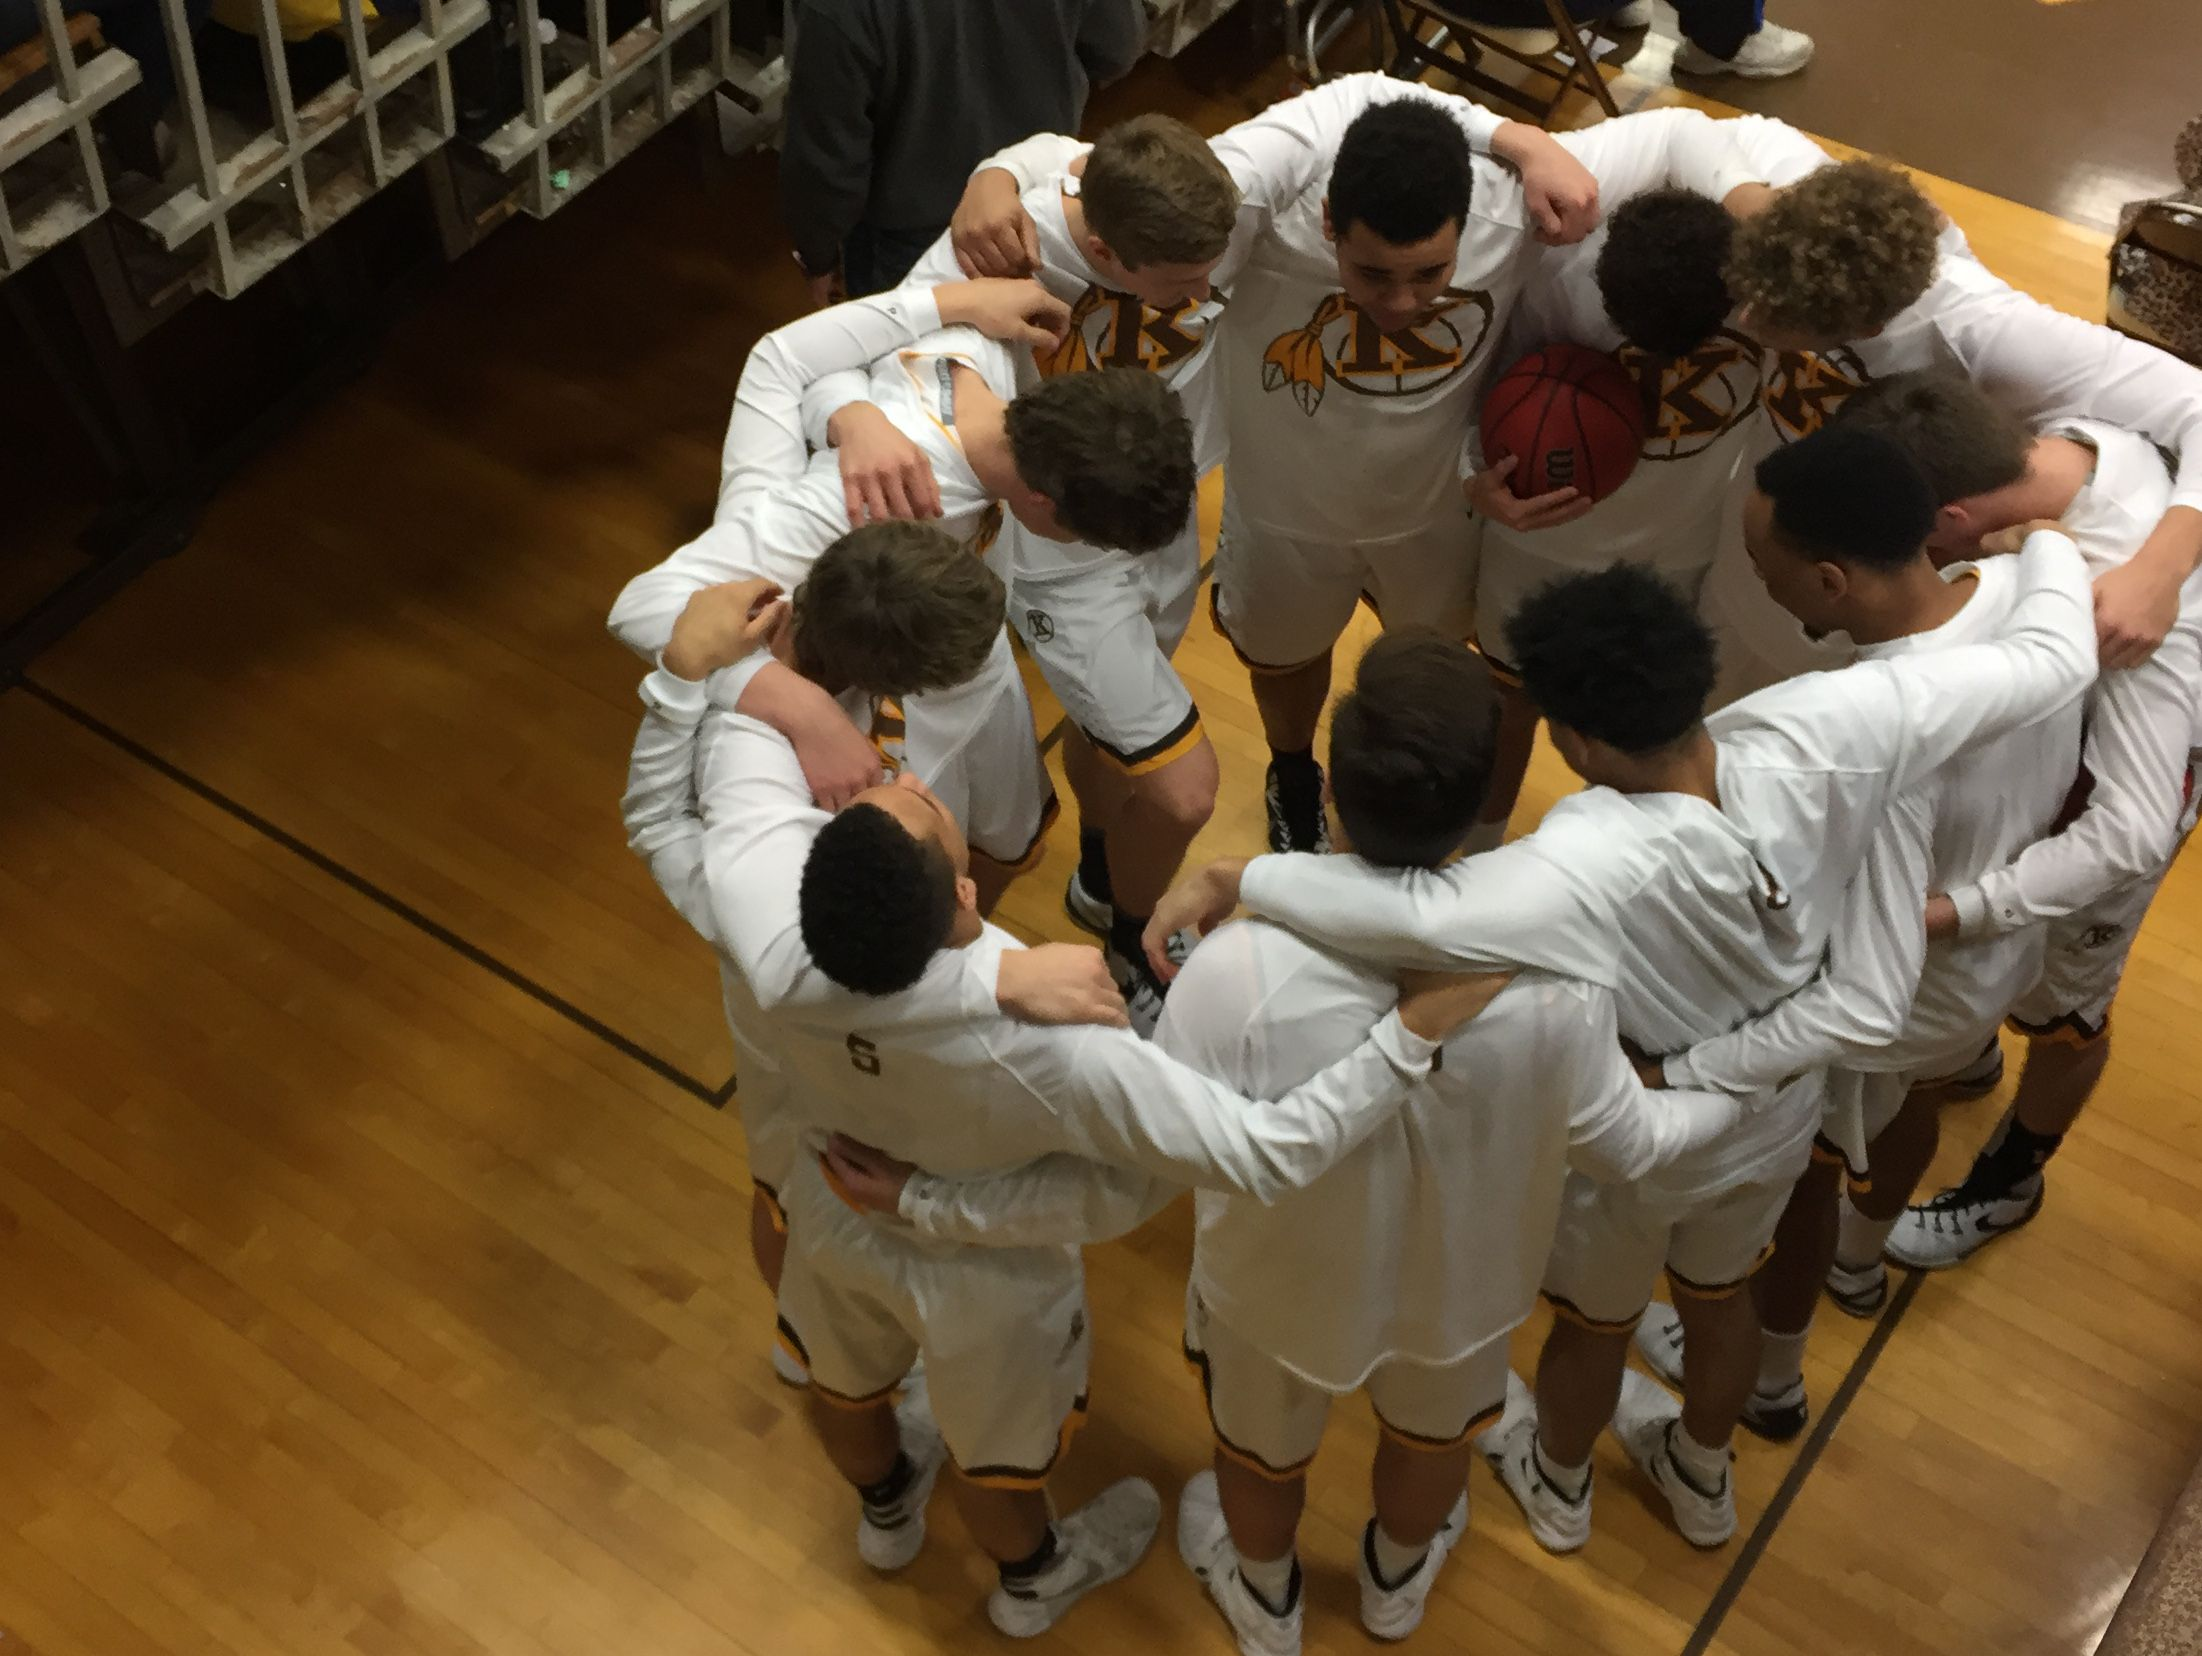 Basketball Quotes: 4 Quotes to Promote Team Camaraderie